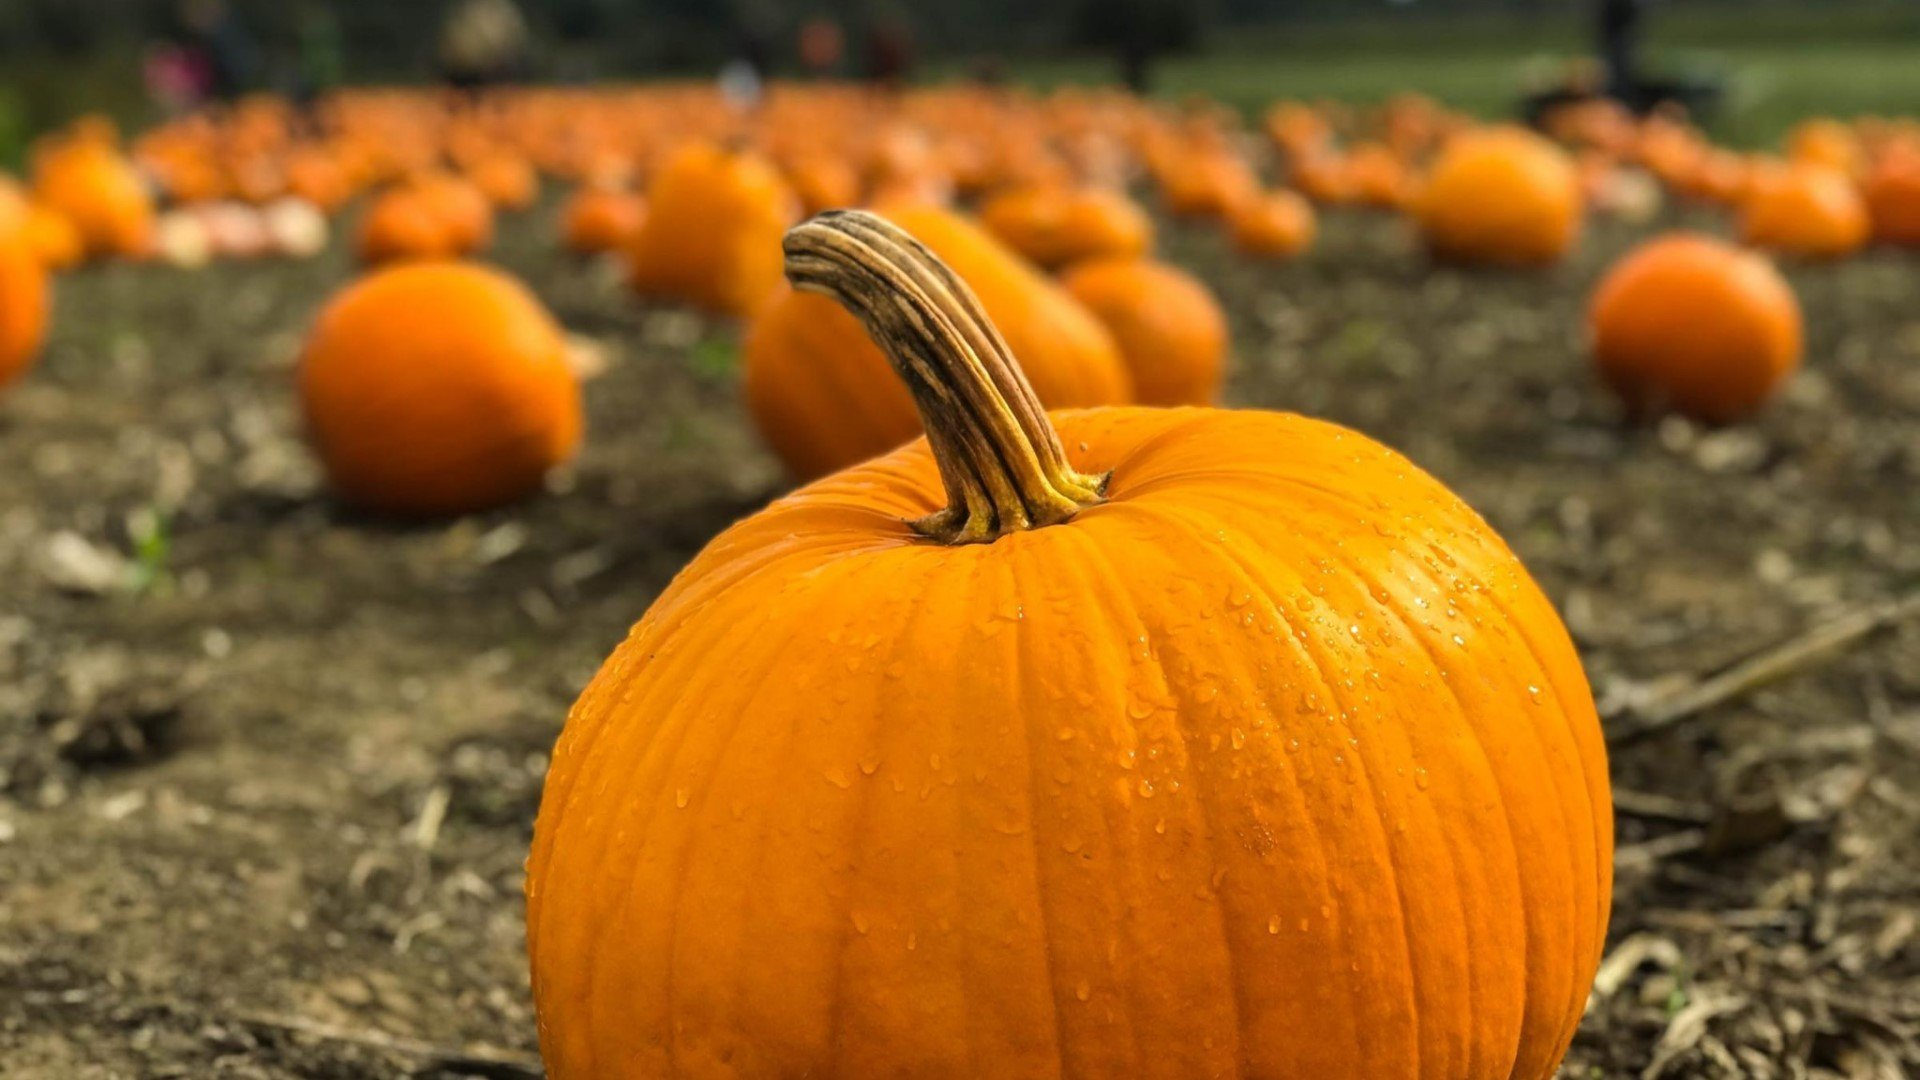 Pick your own pumpkins in Oxfordshire